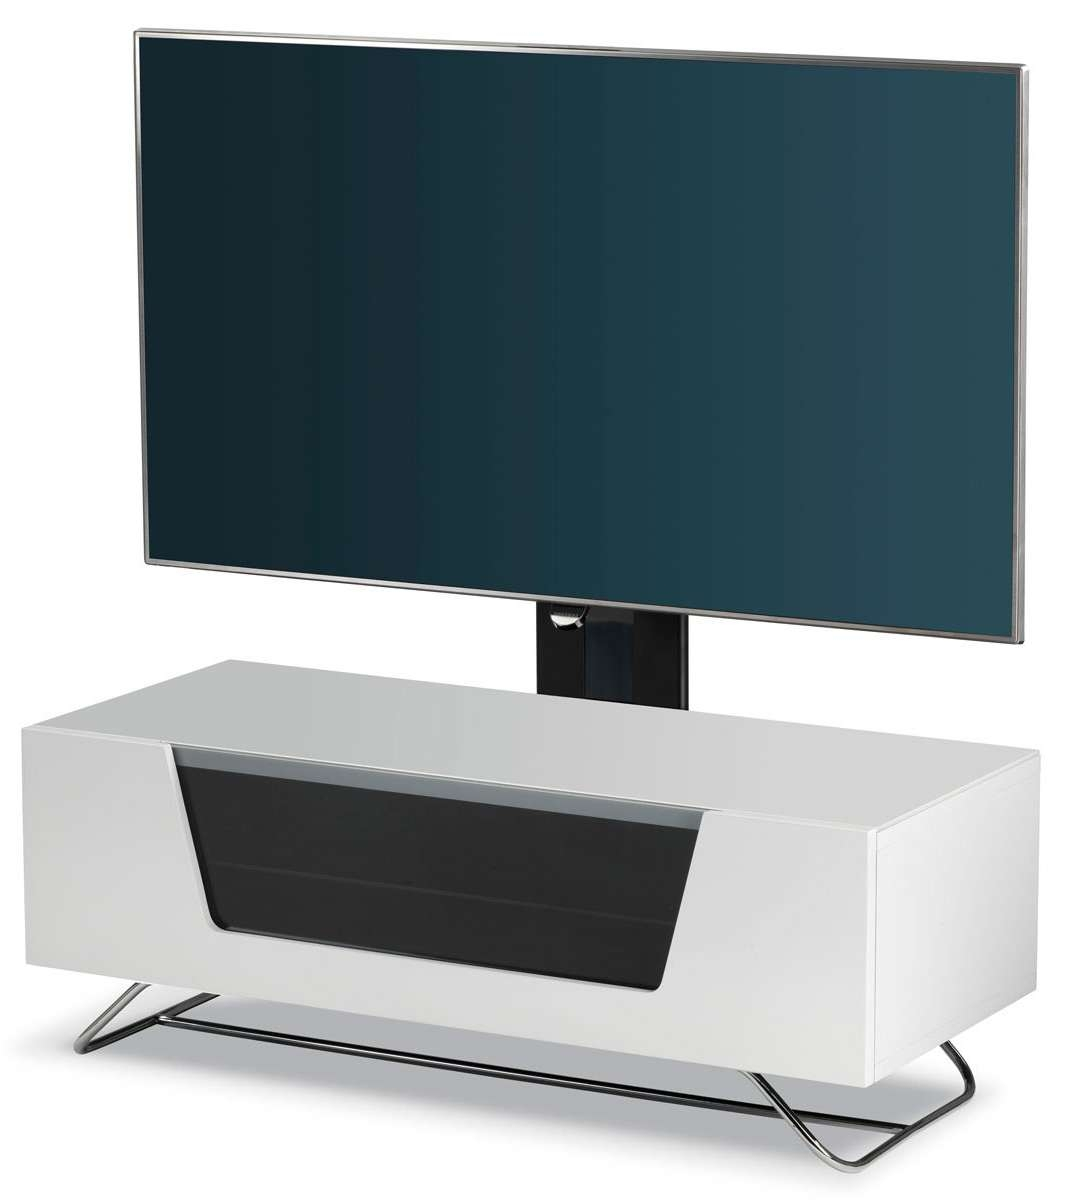 Alphason Chromium High Gloss Cantilever Tv Stand Unit Remote Regarding White Cantilever Tv Stands (View 15 of 20)